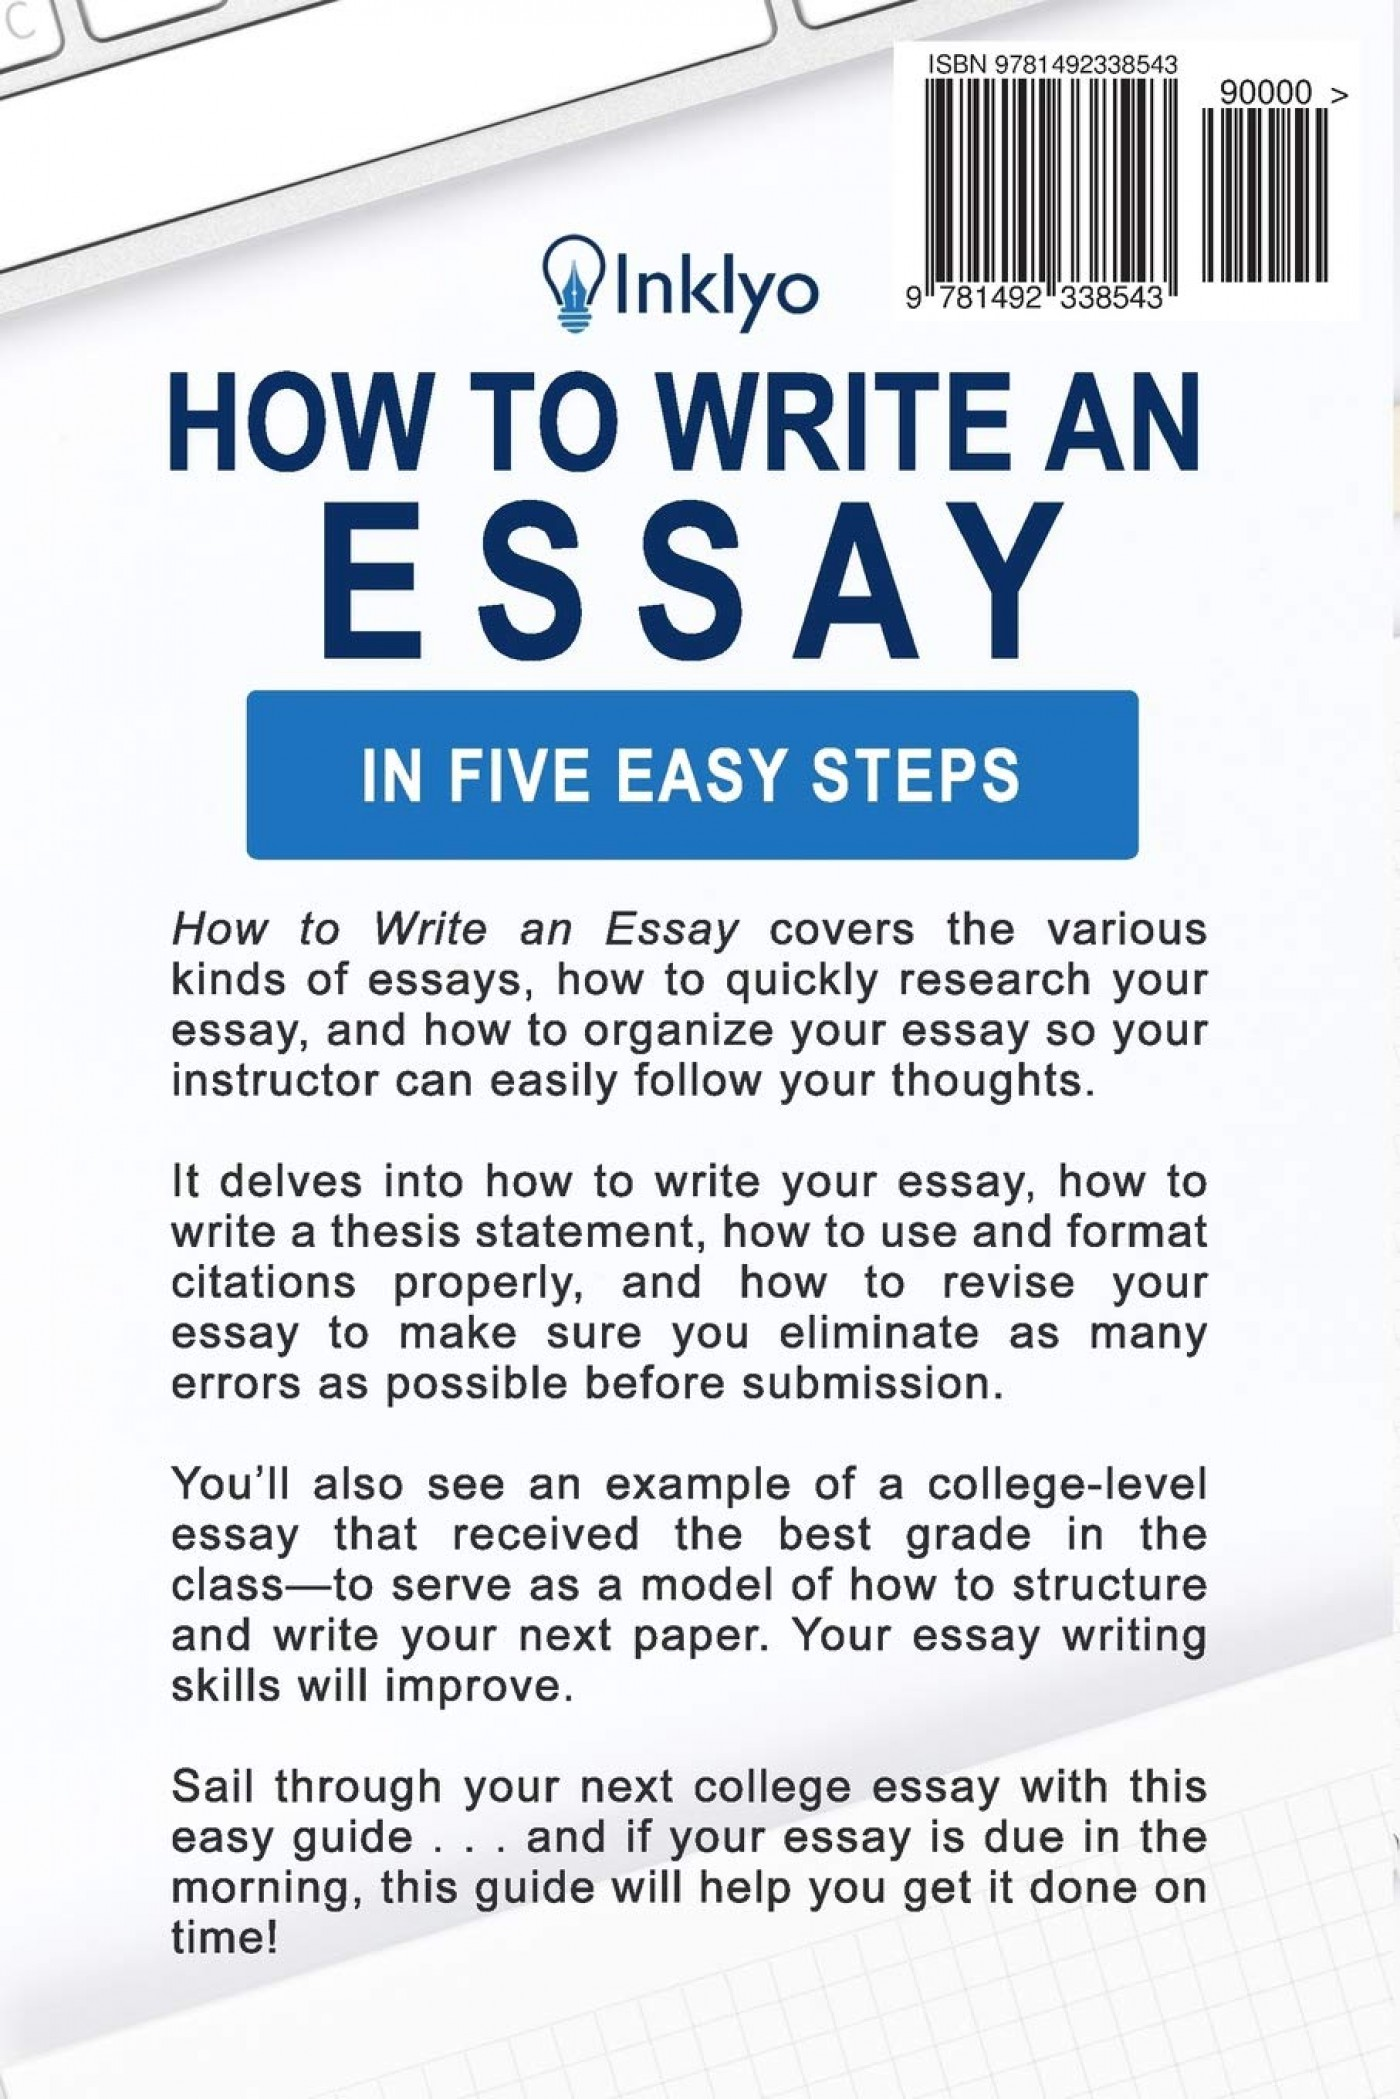 002 How To Write An Essay Example Shocking About Yourself Without Using I For College English Introduction 1400